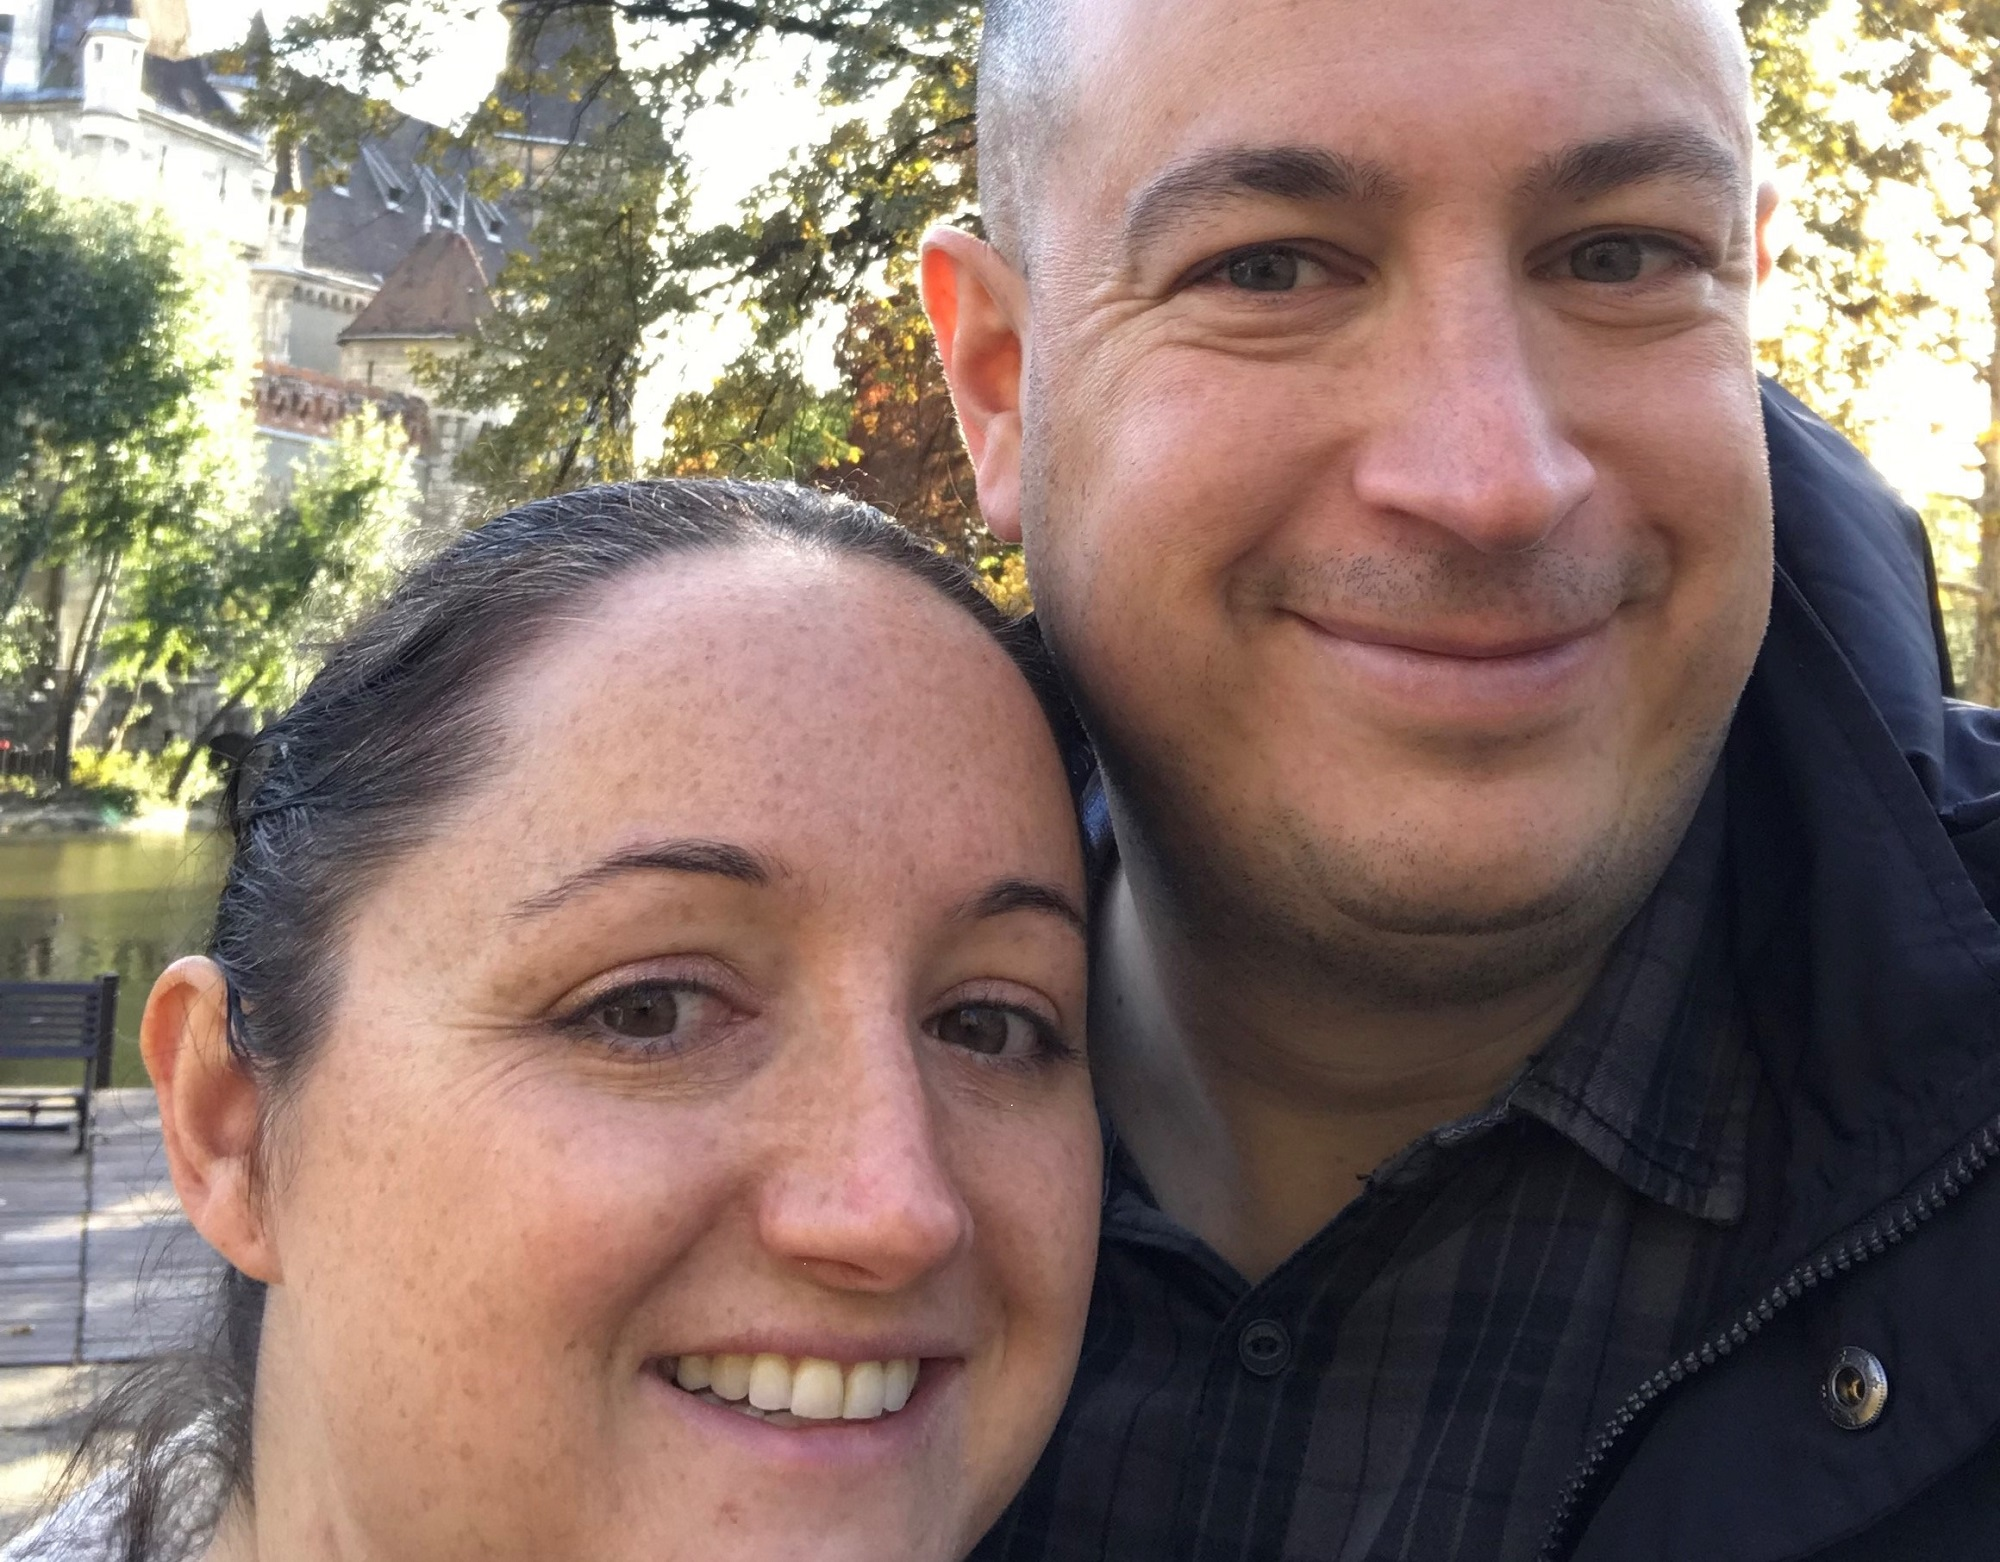 Richard was diagnosed with an astrocytoma in 2017